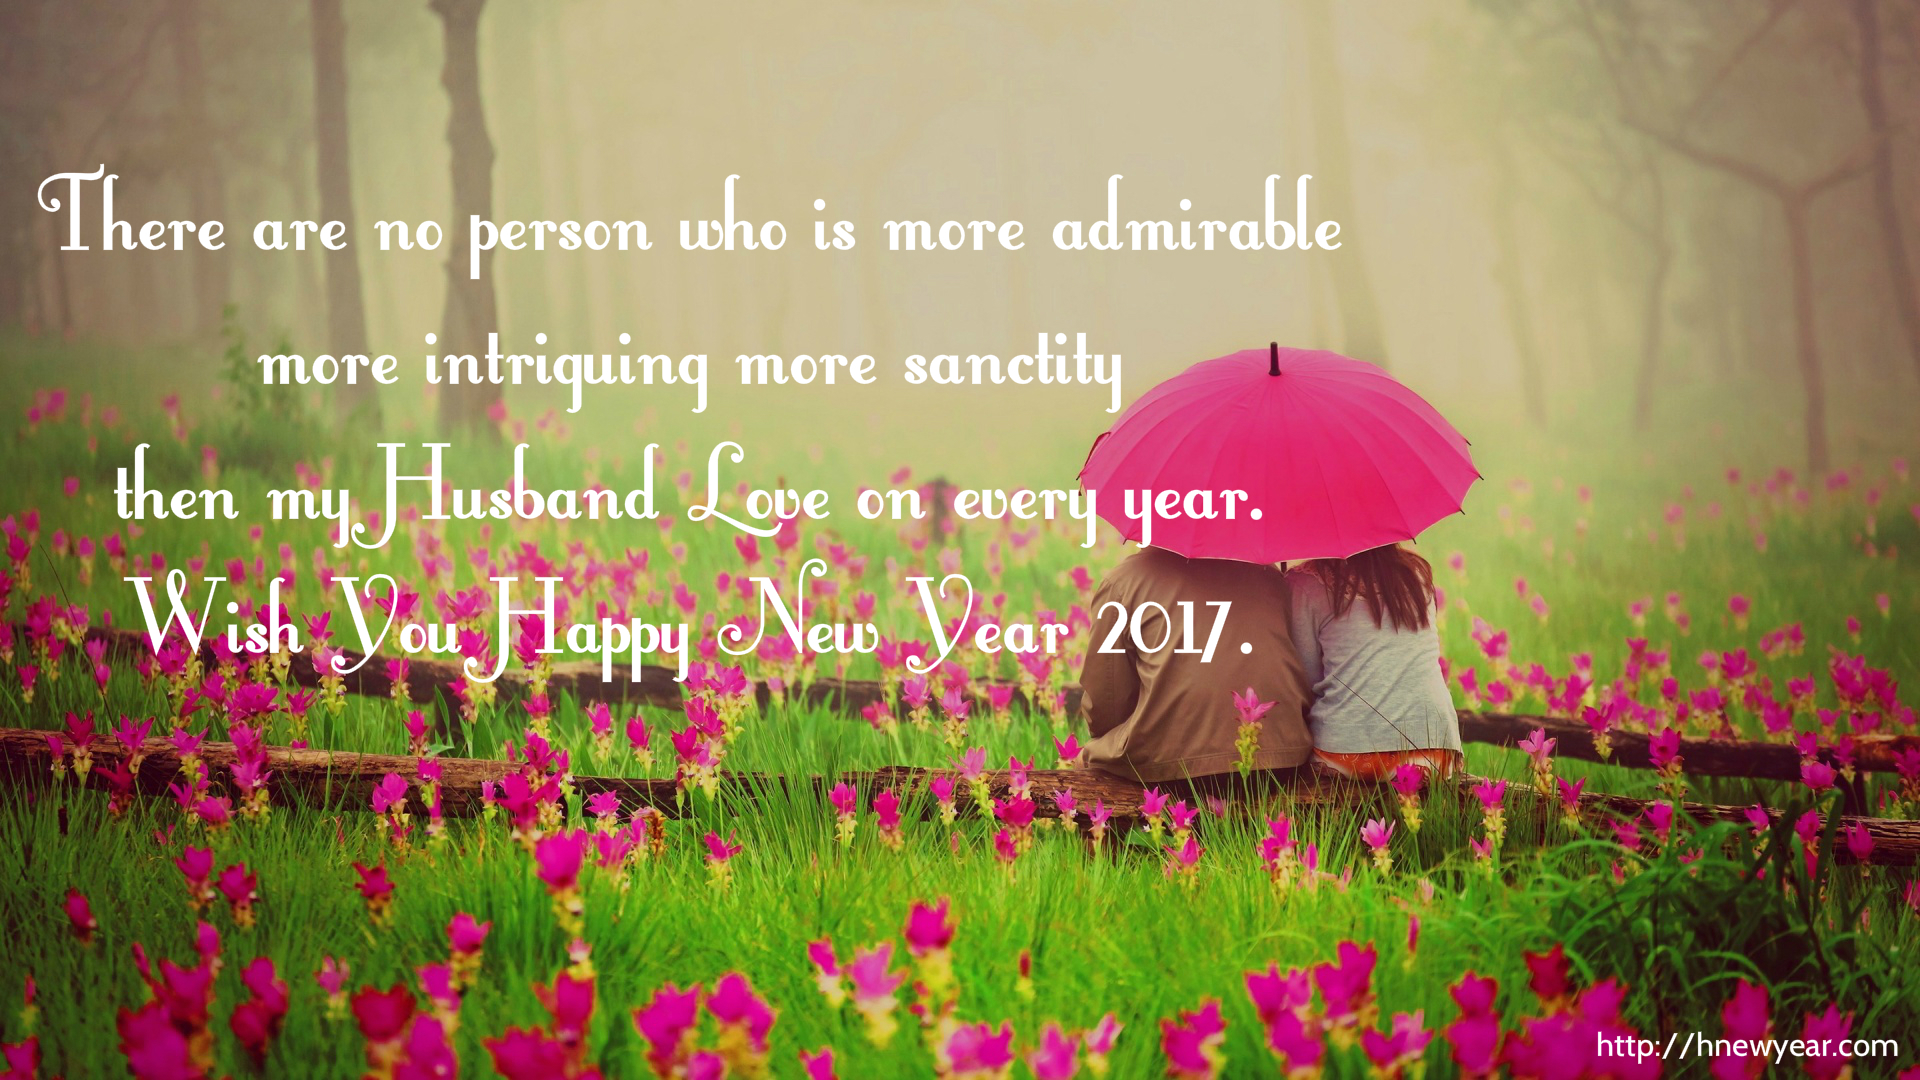 romantic new year wishes 2017